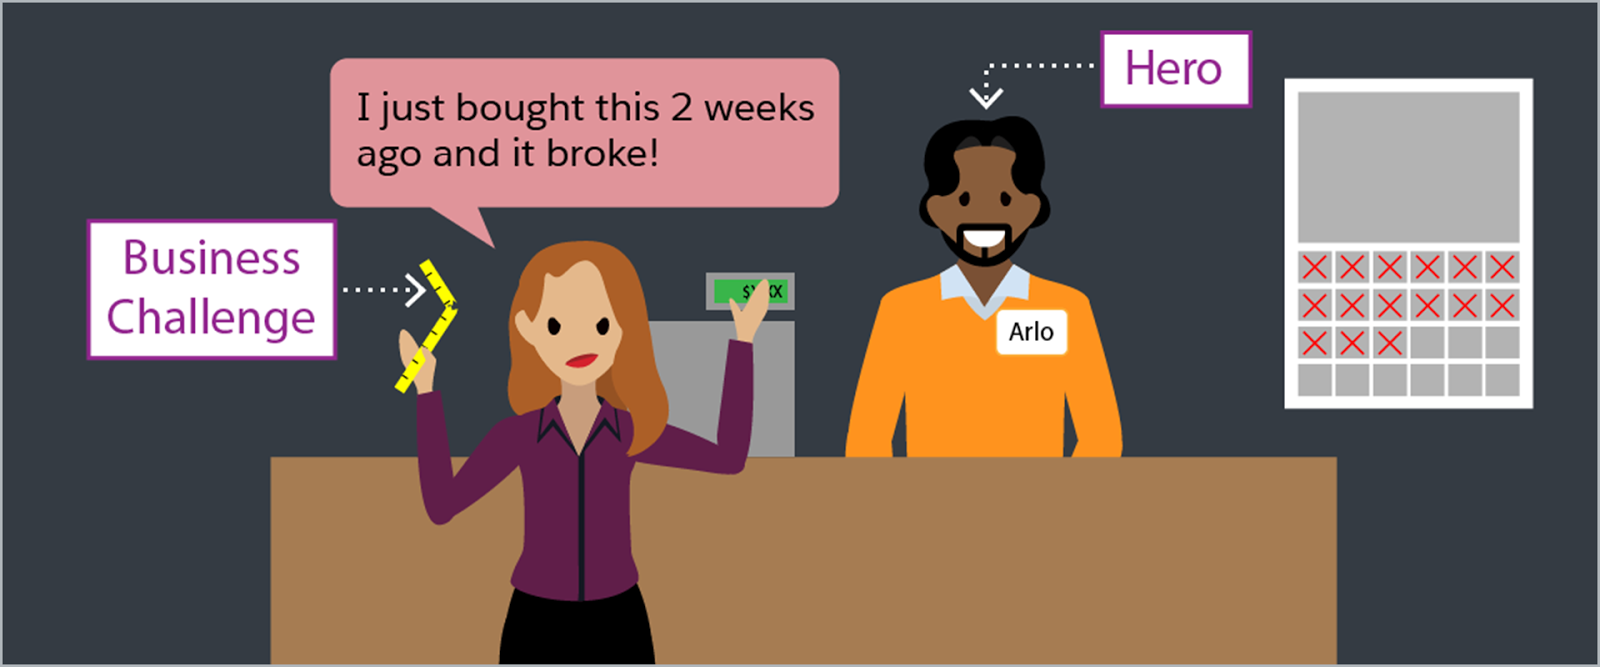 """Customer saying to Arlo, """"I just bought this 2 weeks ago and it broke!"""" The customer is presenting the business challenge and Arlo is the hero in this story."""